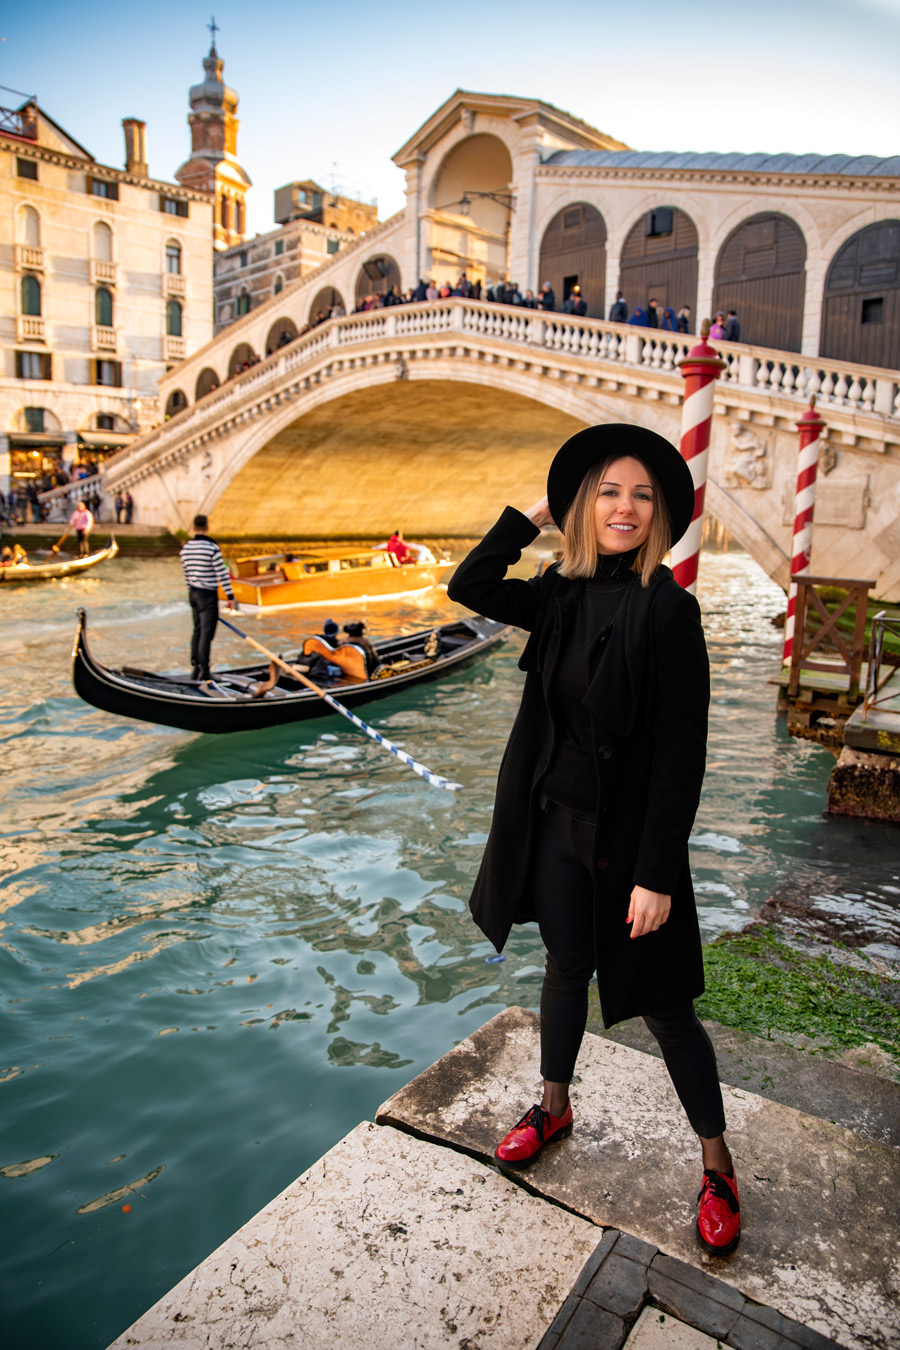 Photo in front of Rialto Bridge in Venice